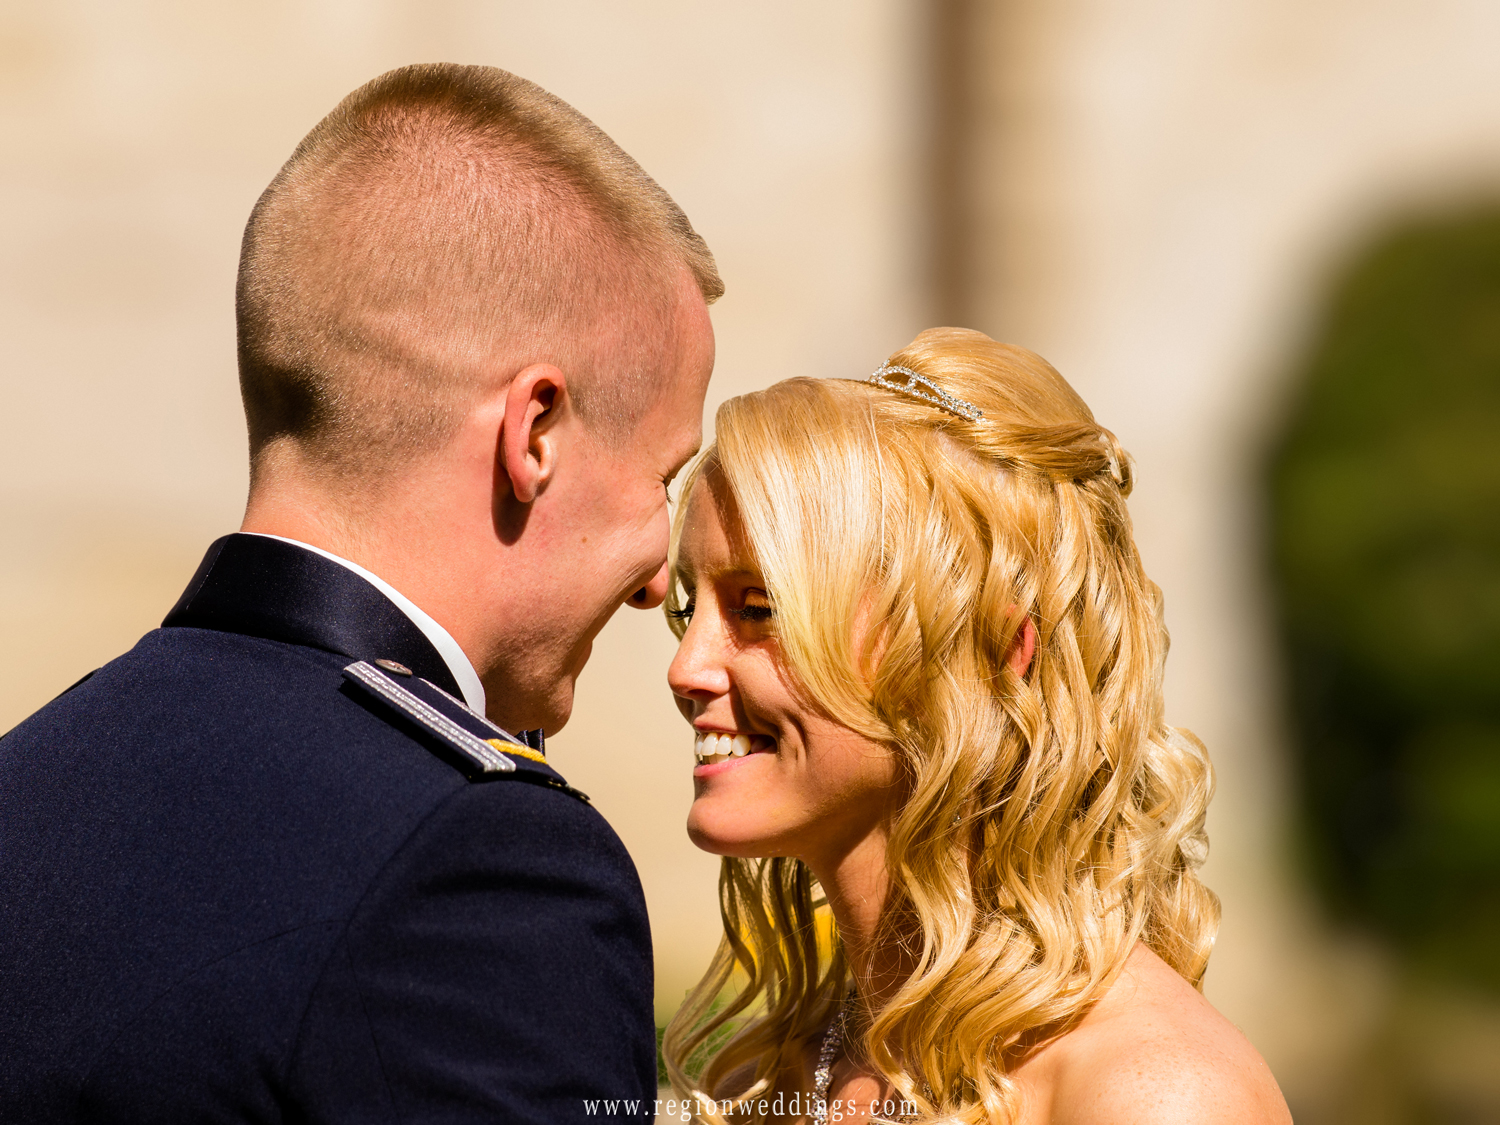 A tender moment between a soldier and his bride just before their Fall wedding ceremony.